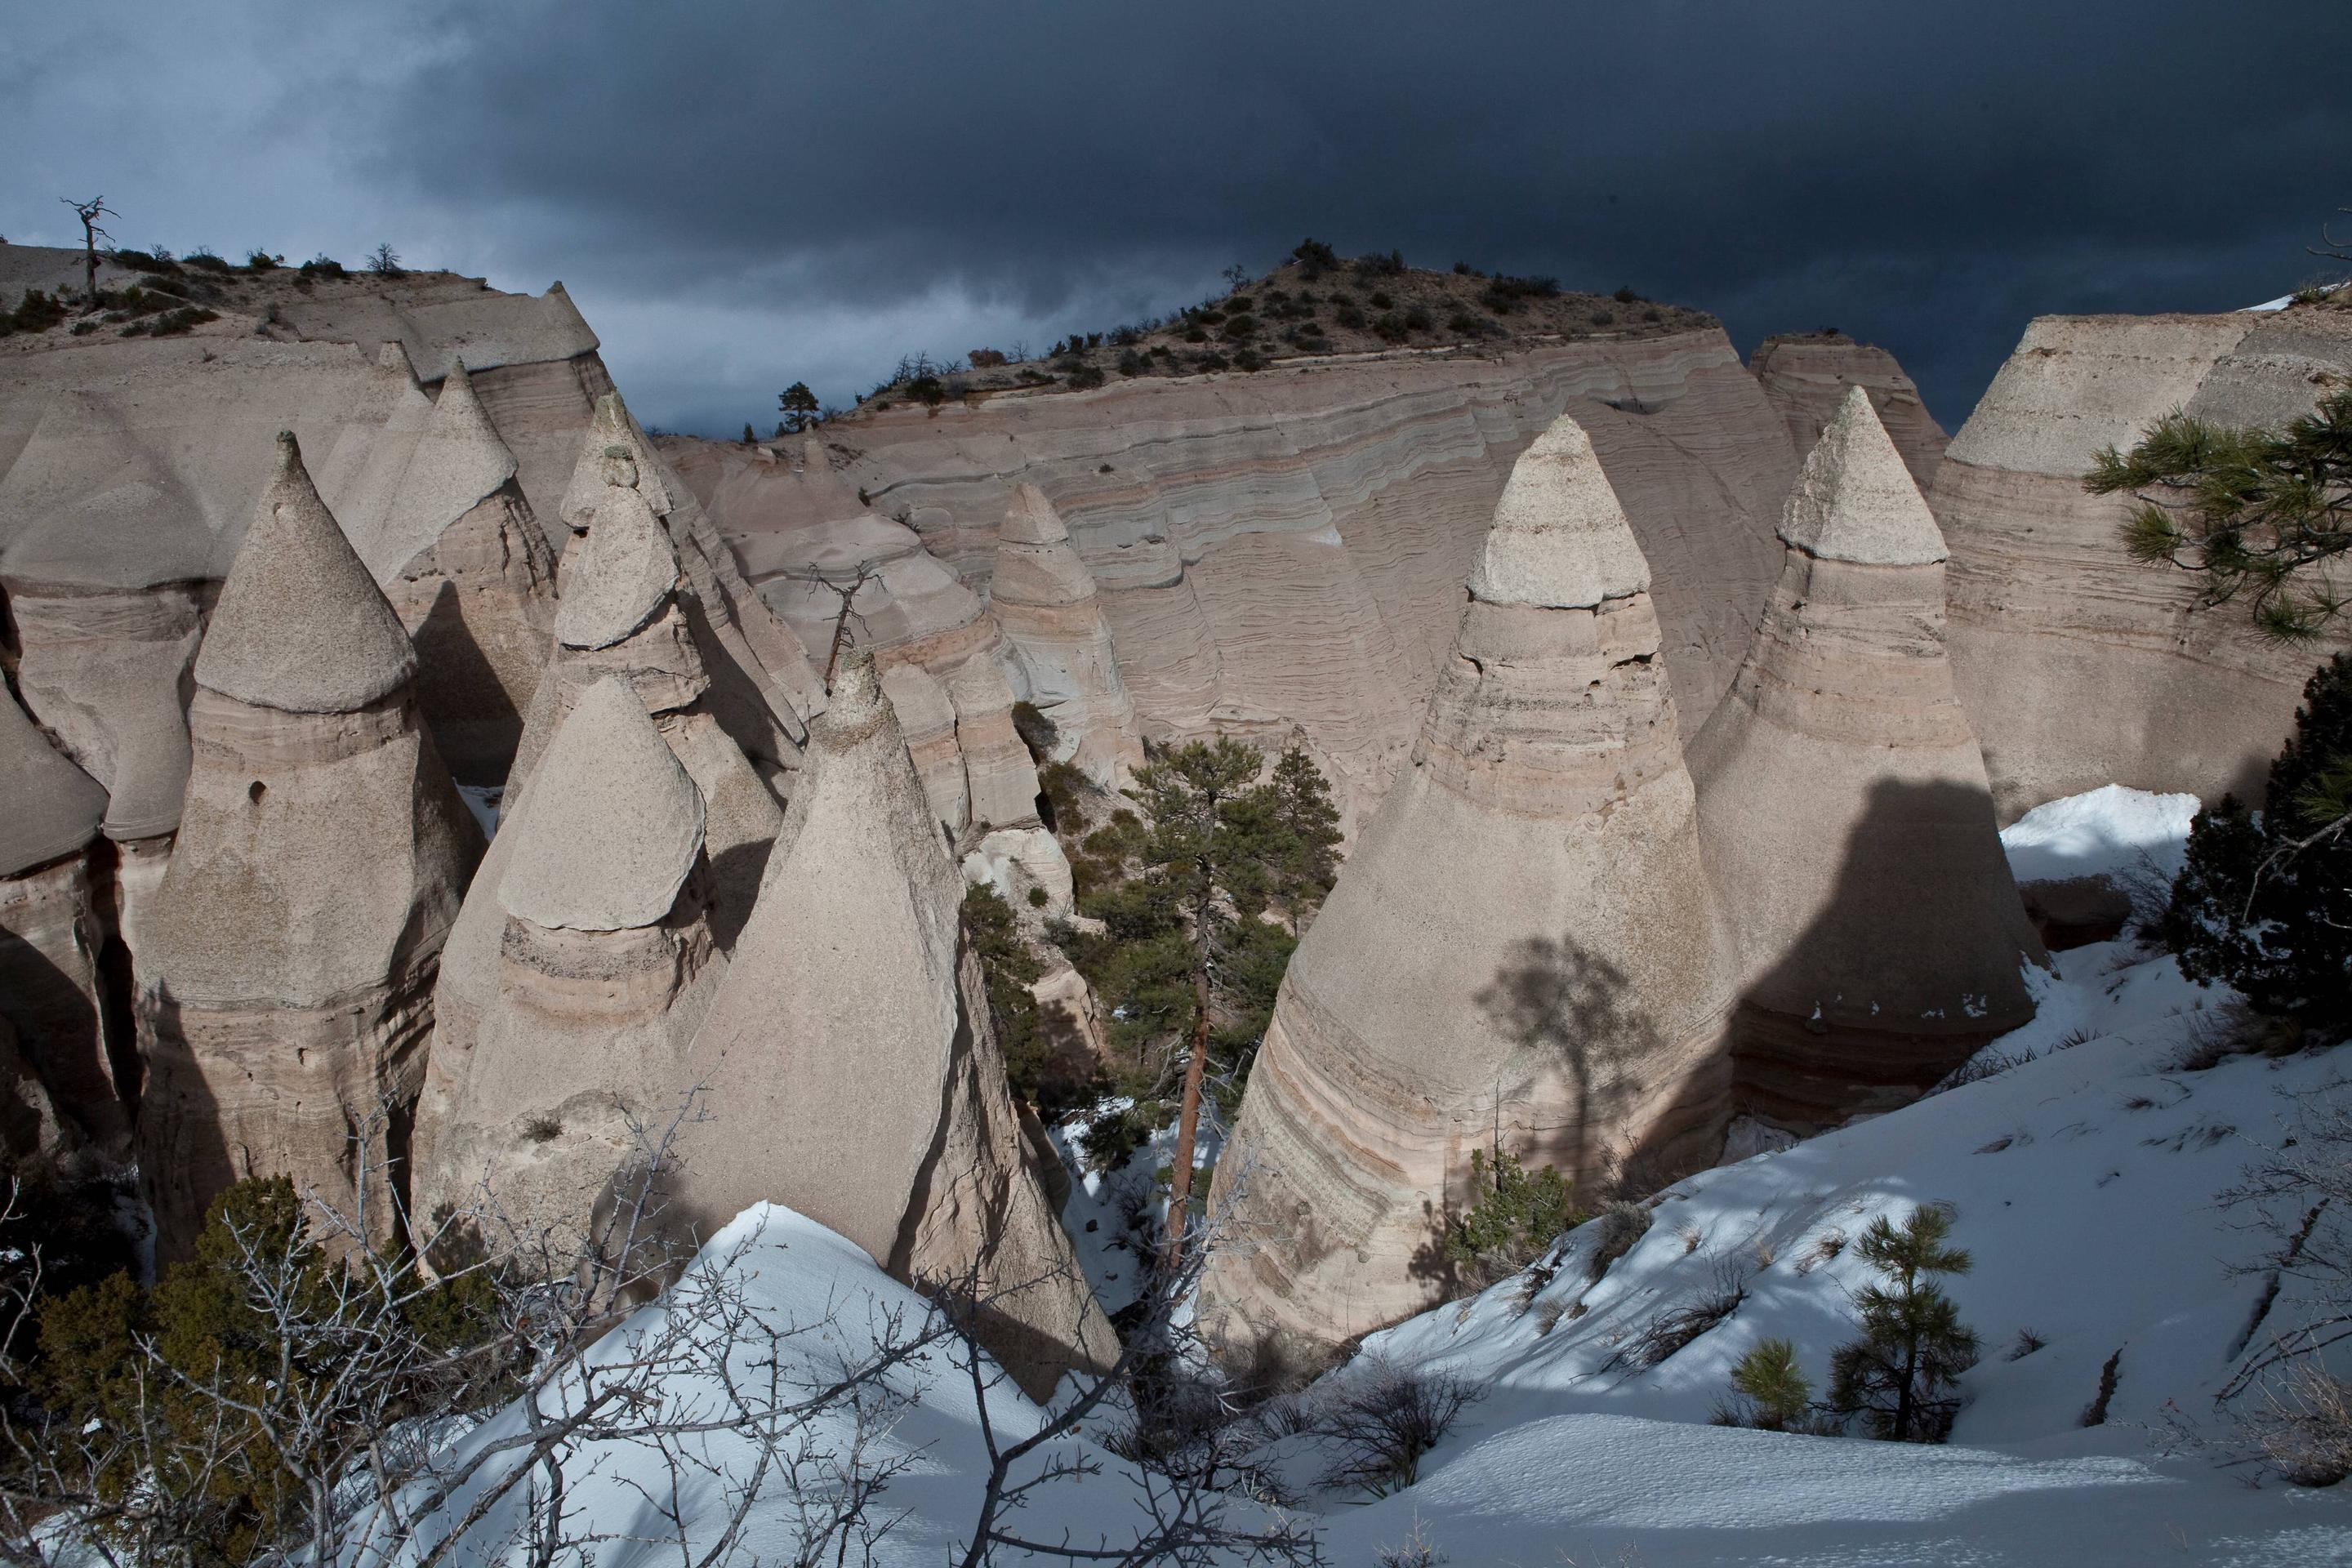 Snow at the base of tent rock formations